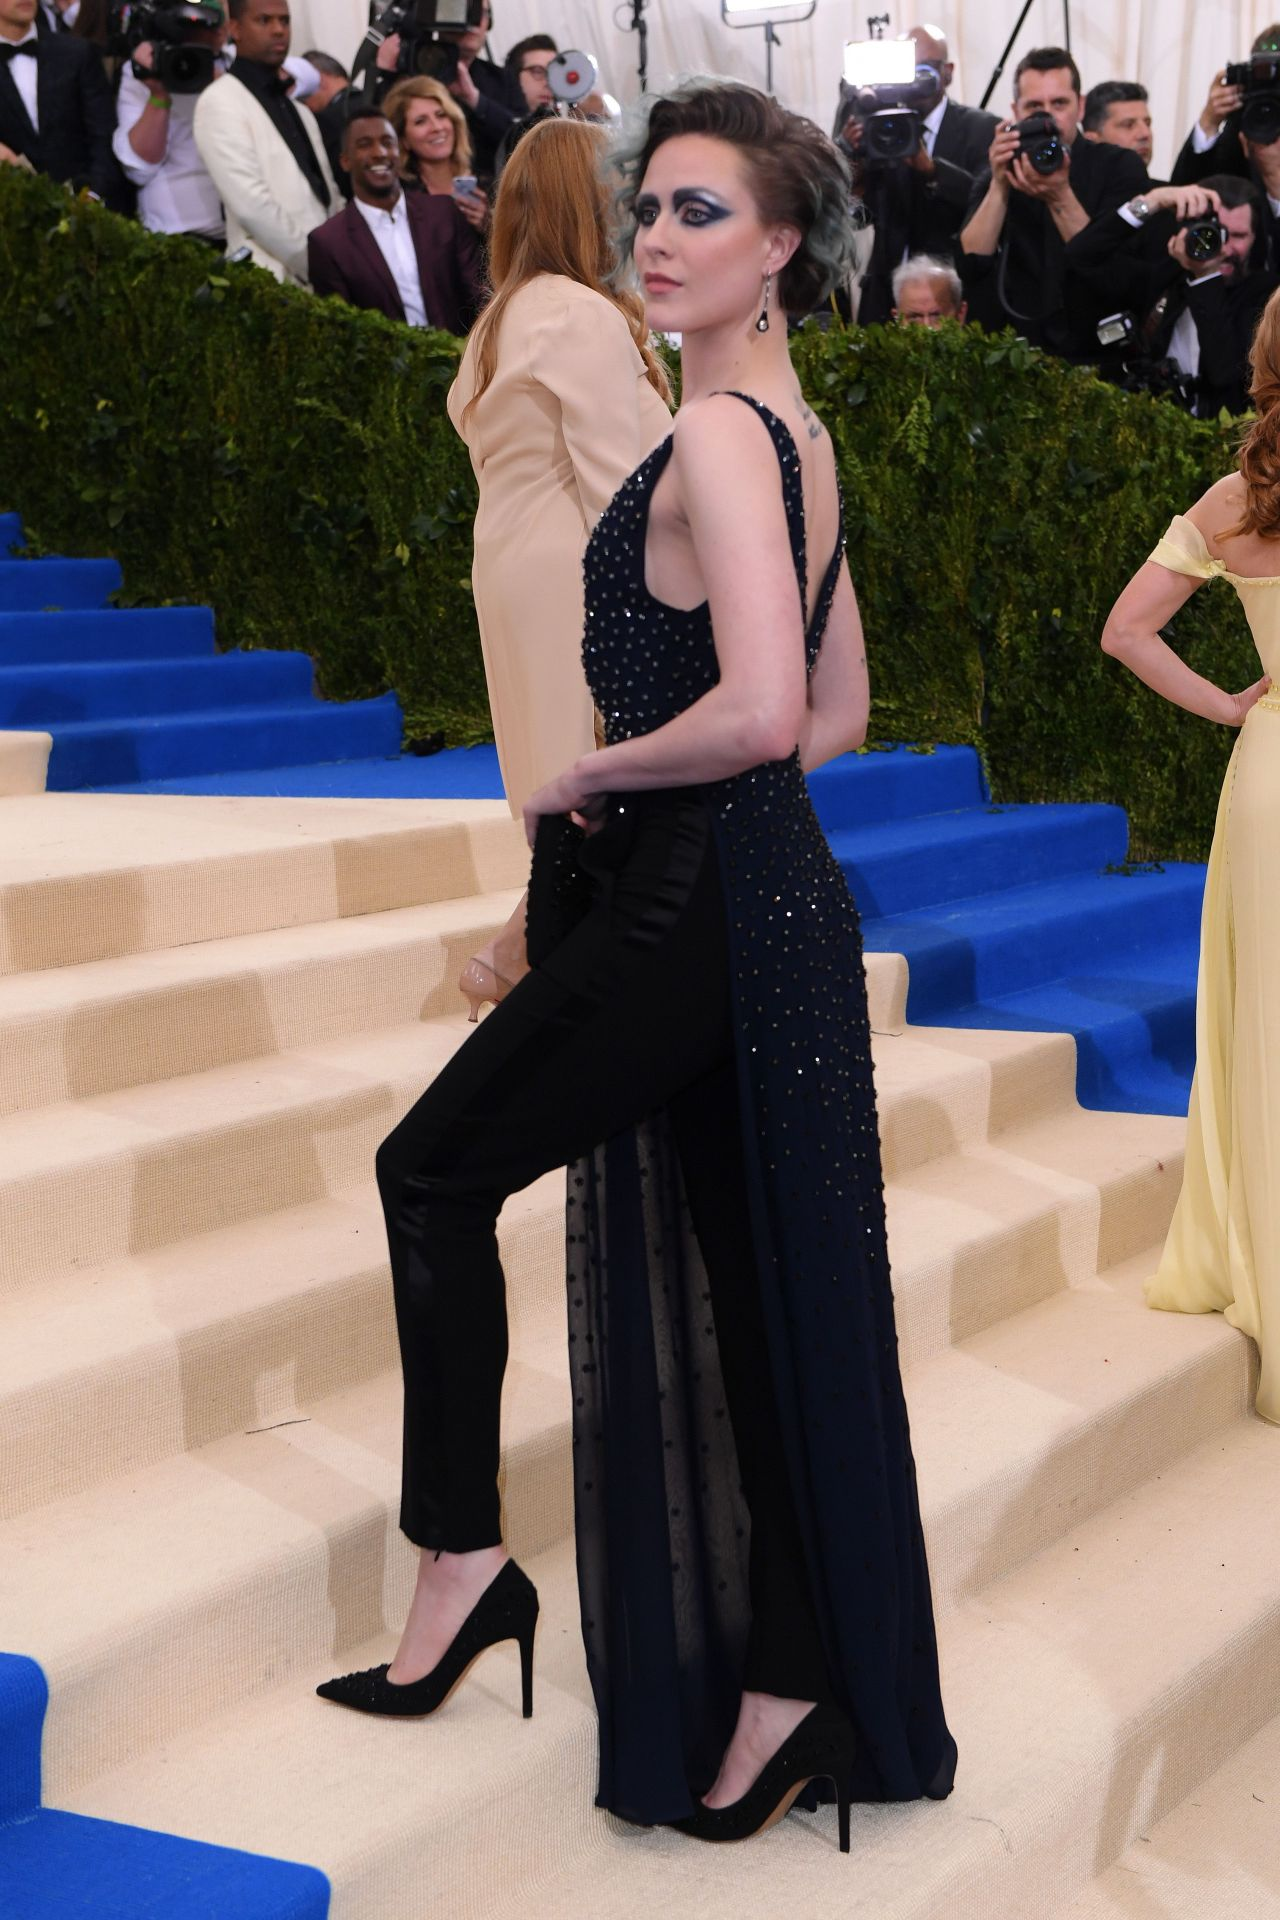 Evan Rachel Wood At Met Gala In New York 05 01 2017